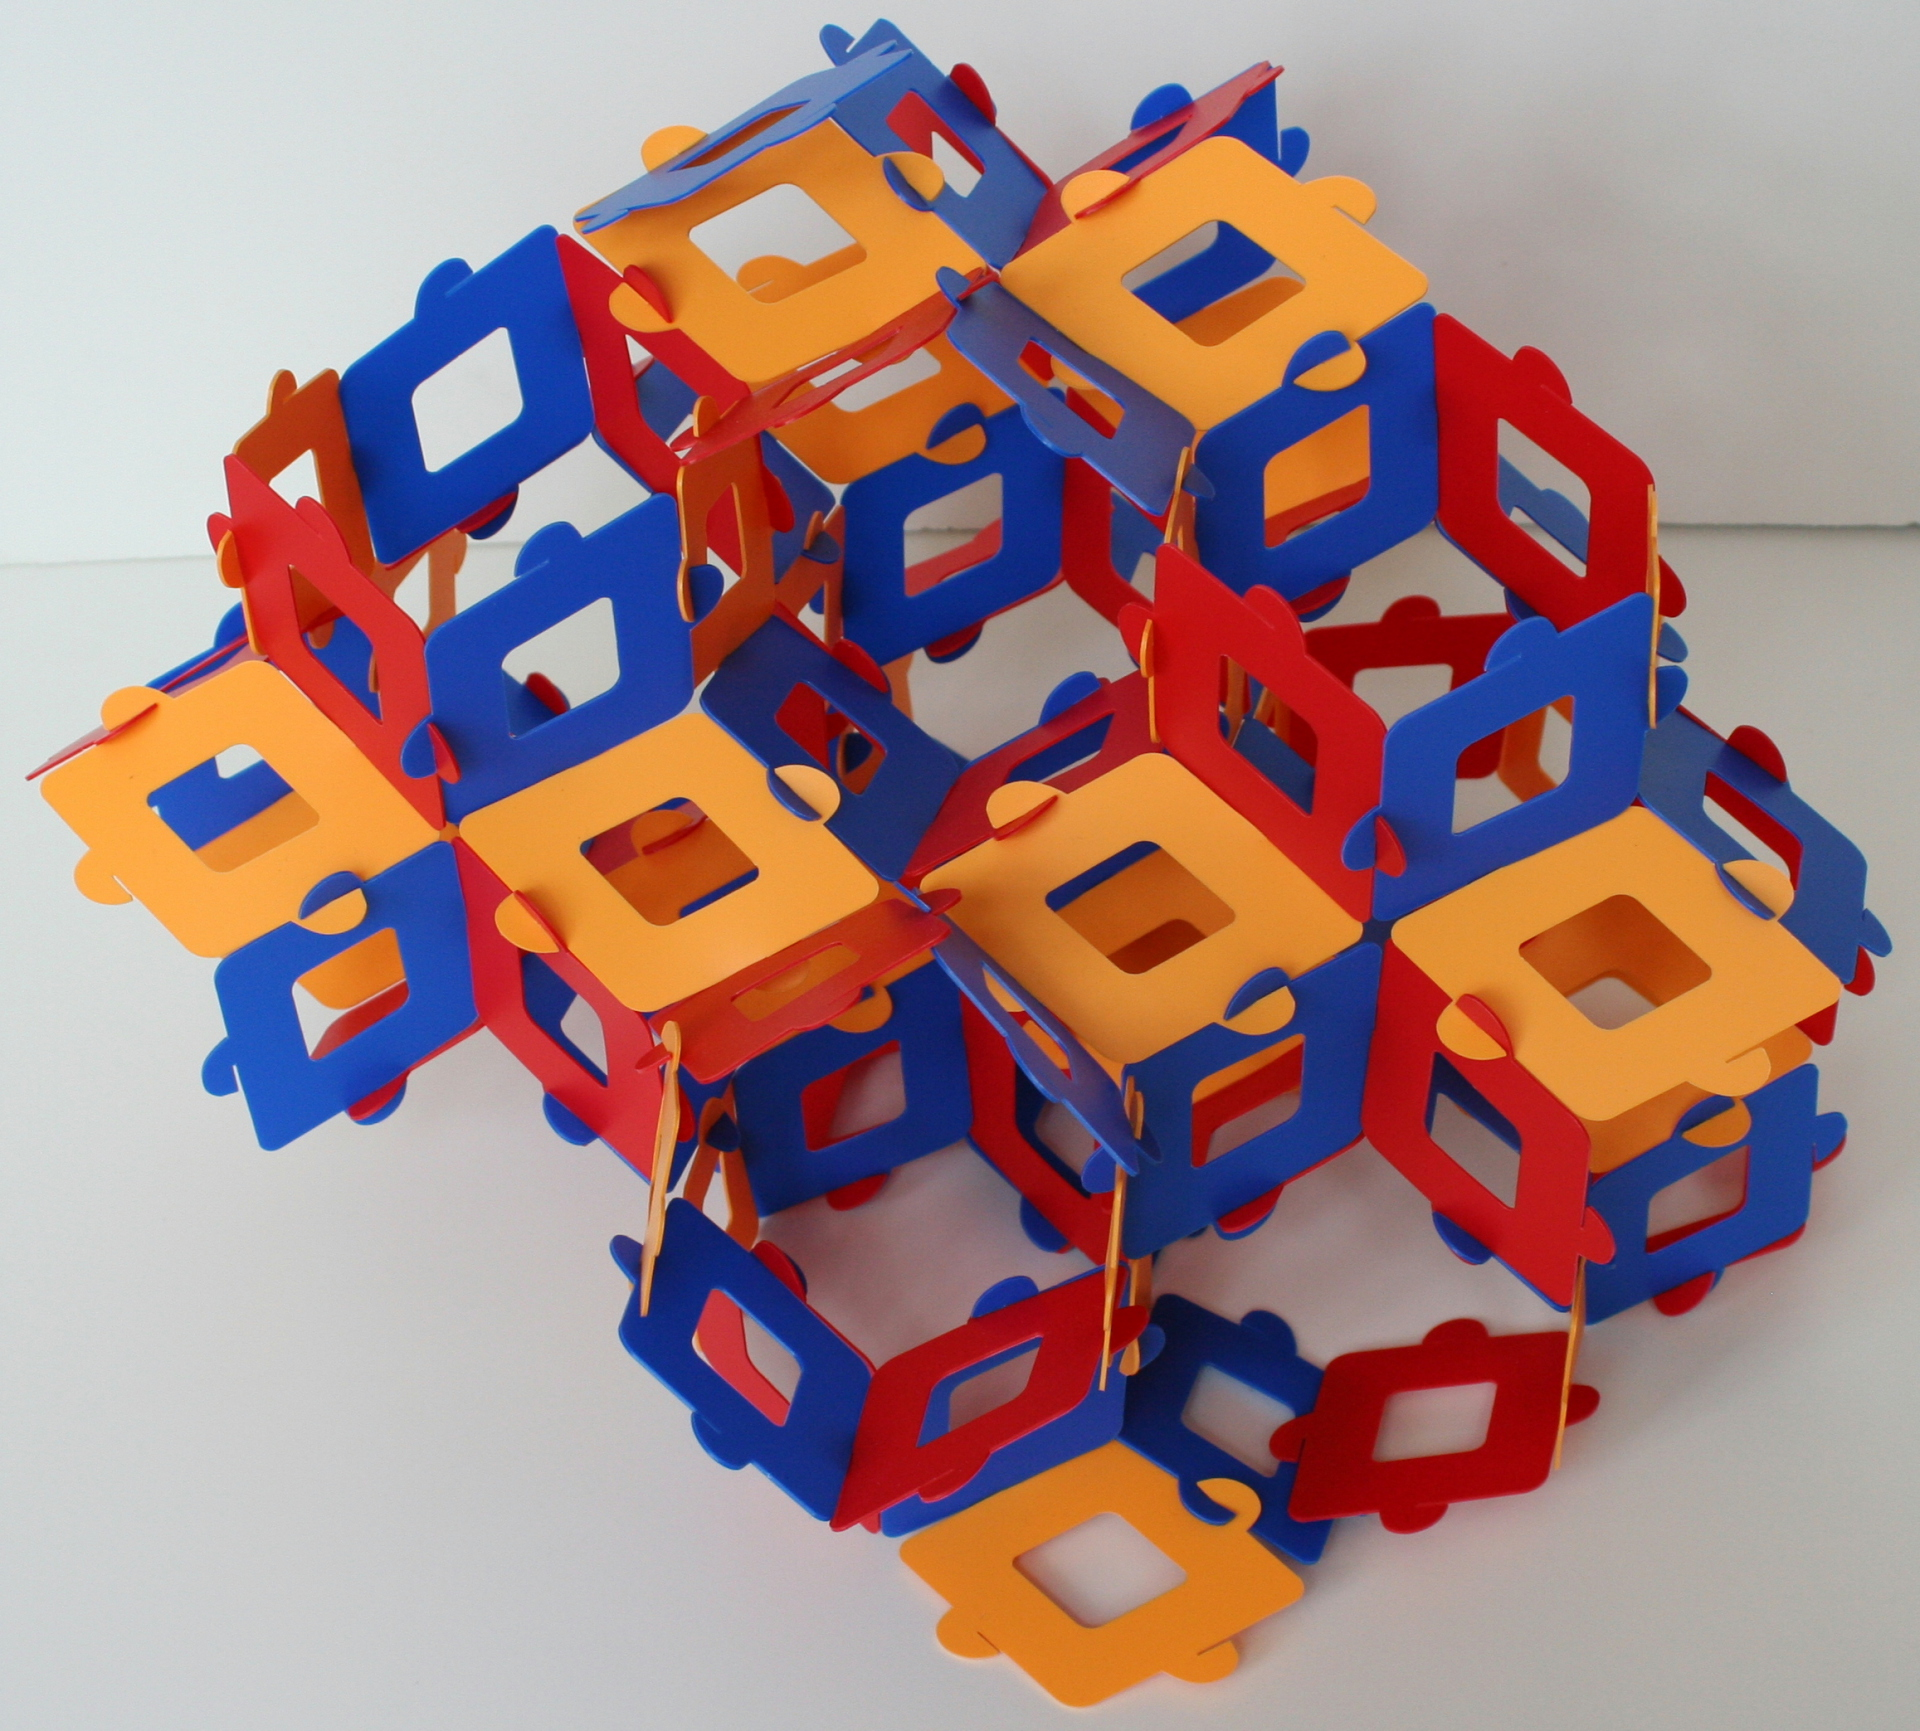 Infinite polyhedron based on the space tessellation with rhombic dodecahedra